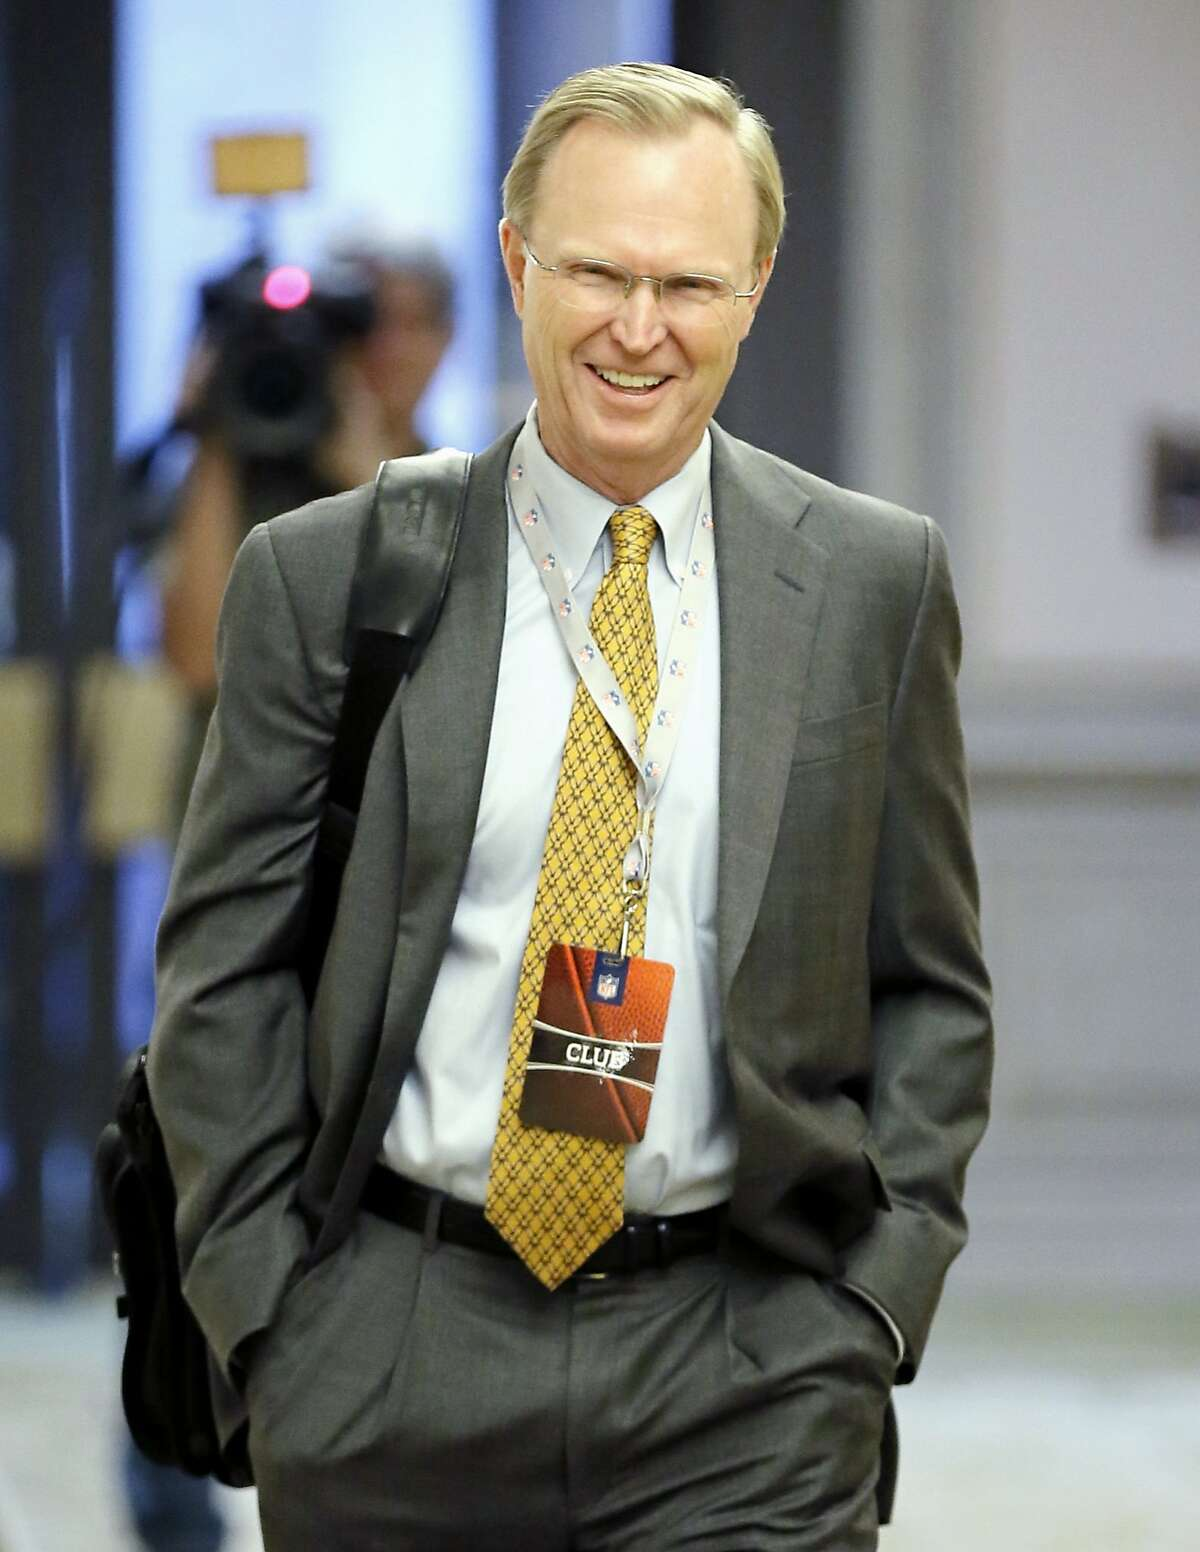 New York Giants owner John Mara arrives for an NFL owners meeting in Irving, Texas, Wednesday, Dec. 2, 2015. (AP Photo/Brandon Wade)